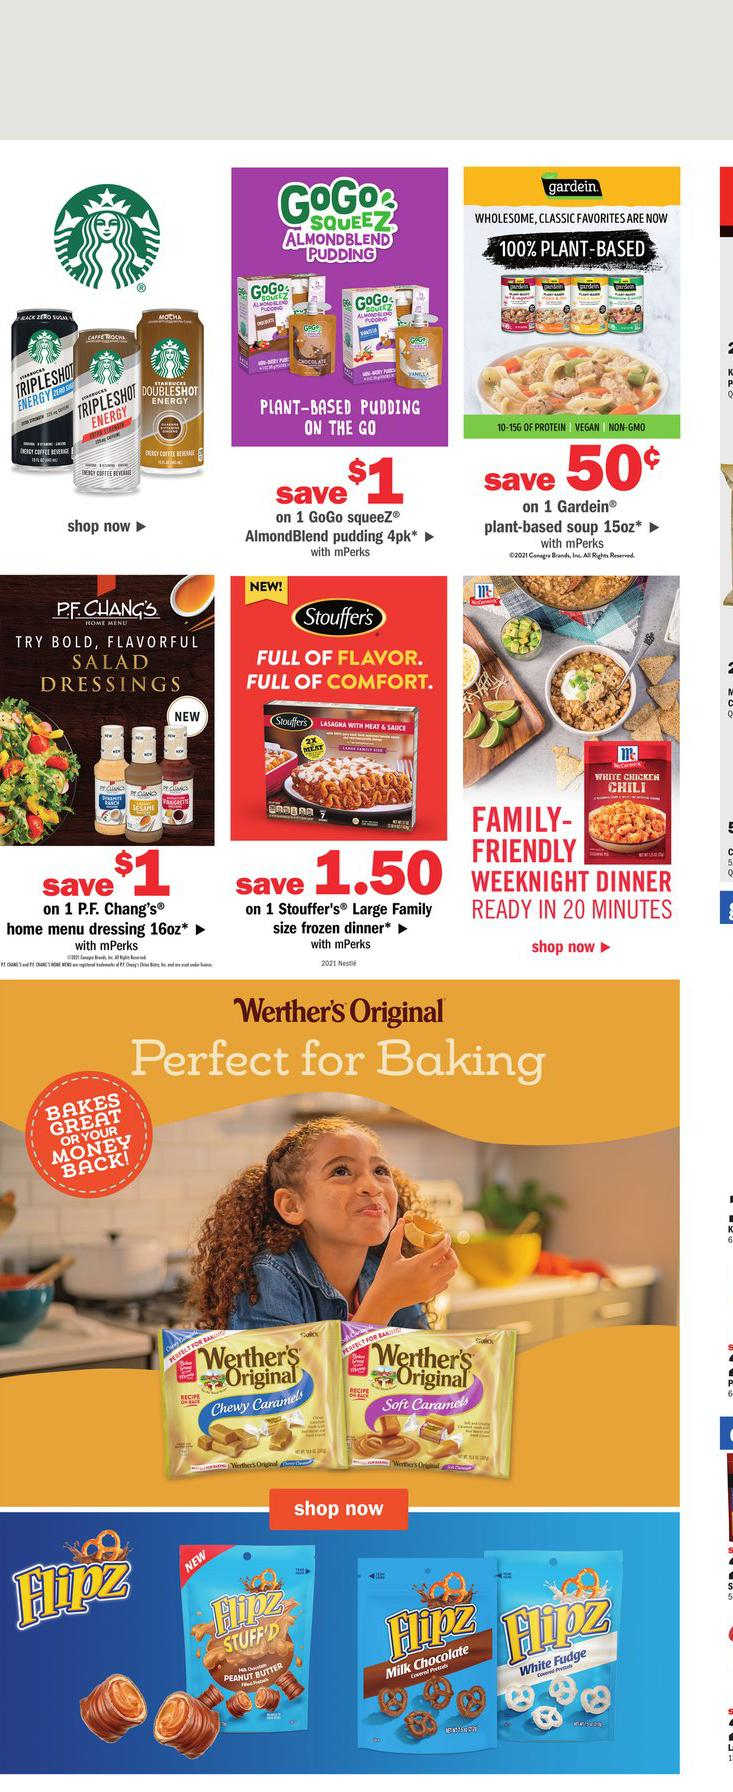 10.10.2021 Meijer ad 3. page